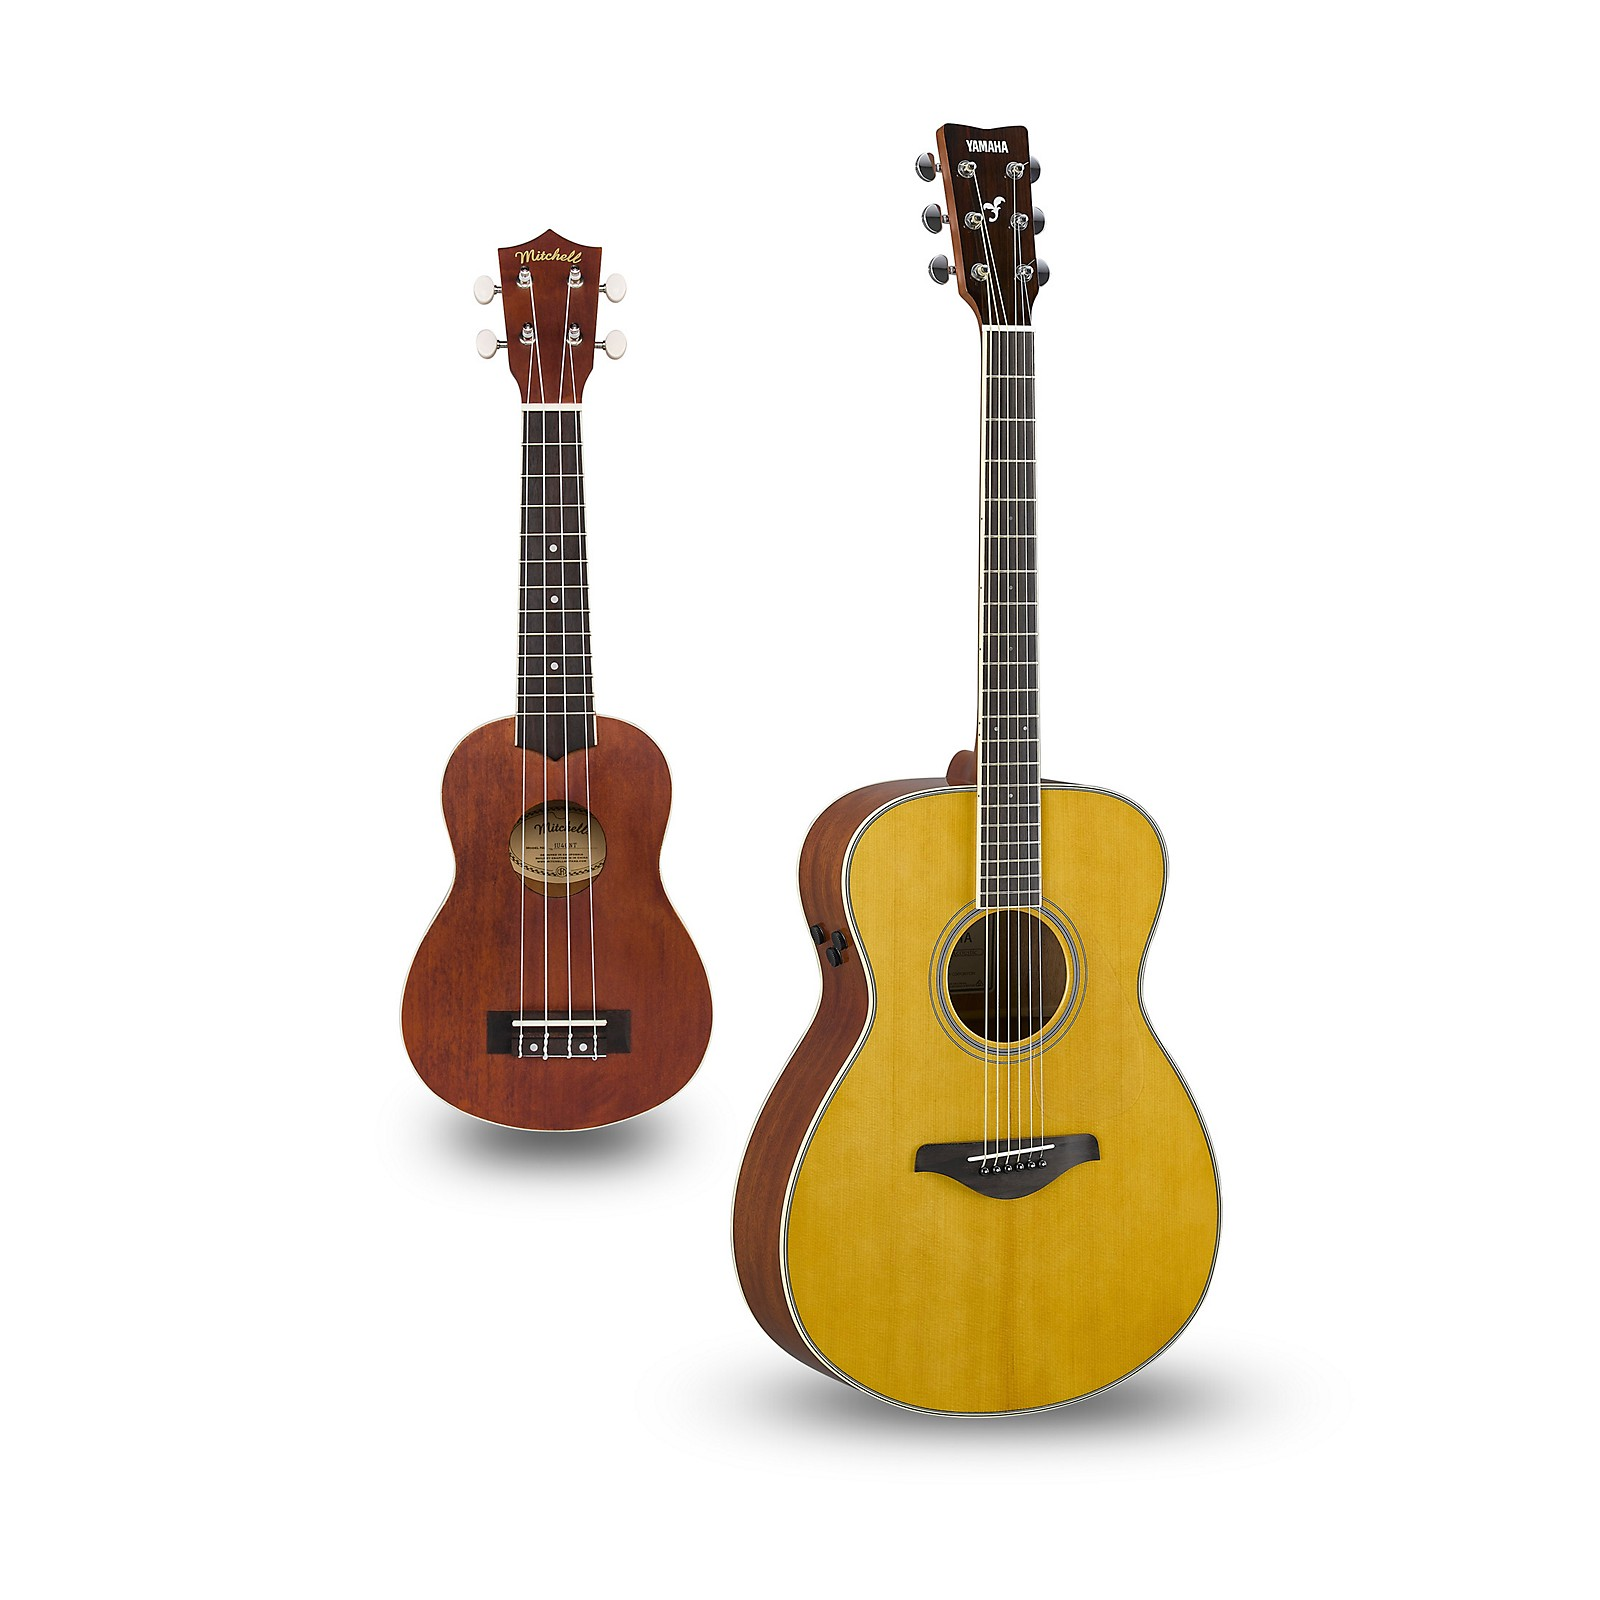 Yamaha FS-TA TransAcoustic Concert Acoustic-Electric Guitar and Ukulele Package